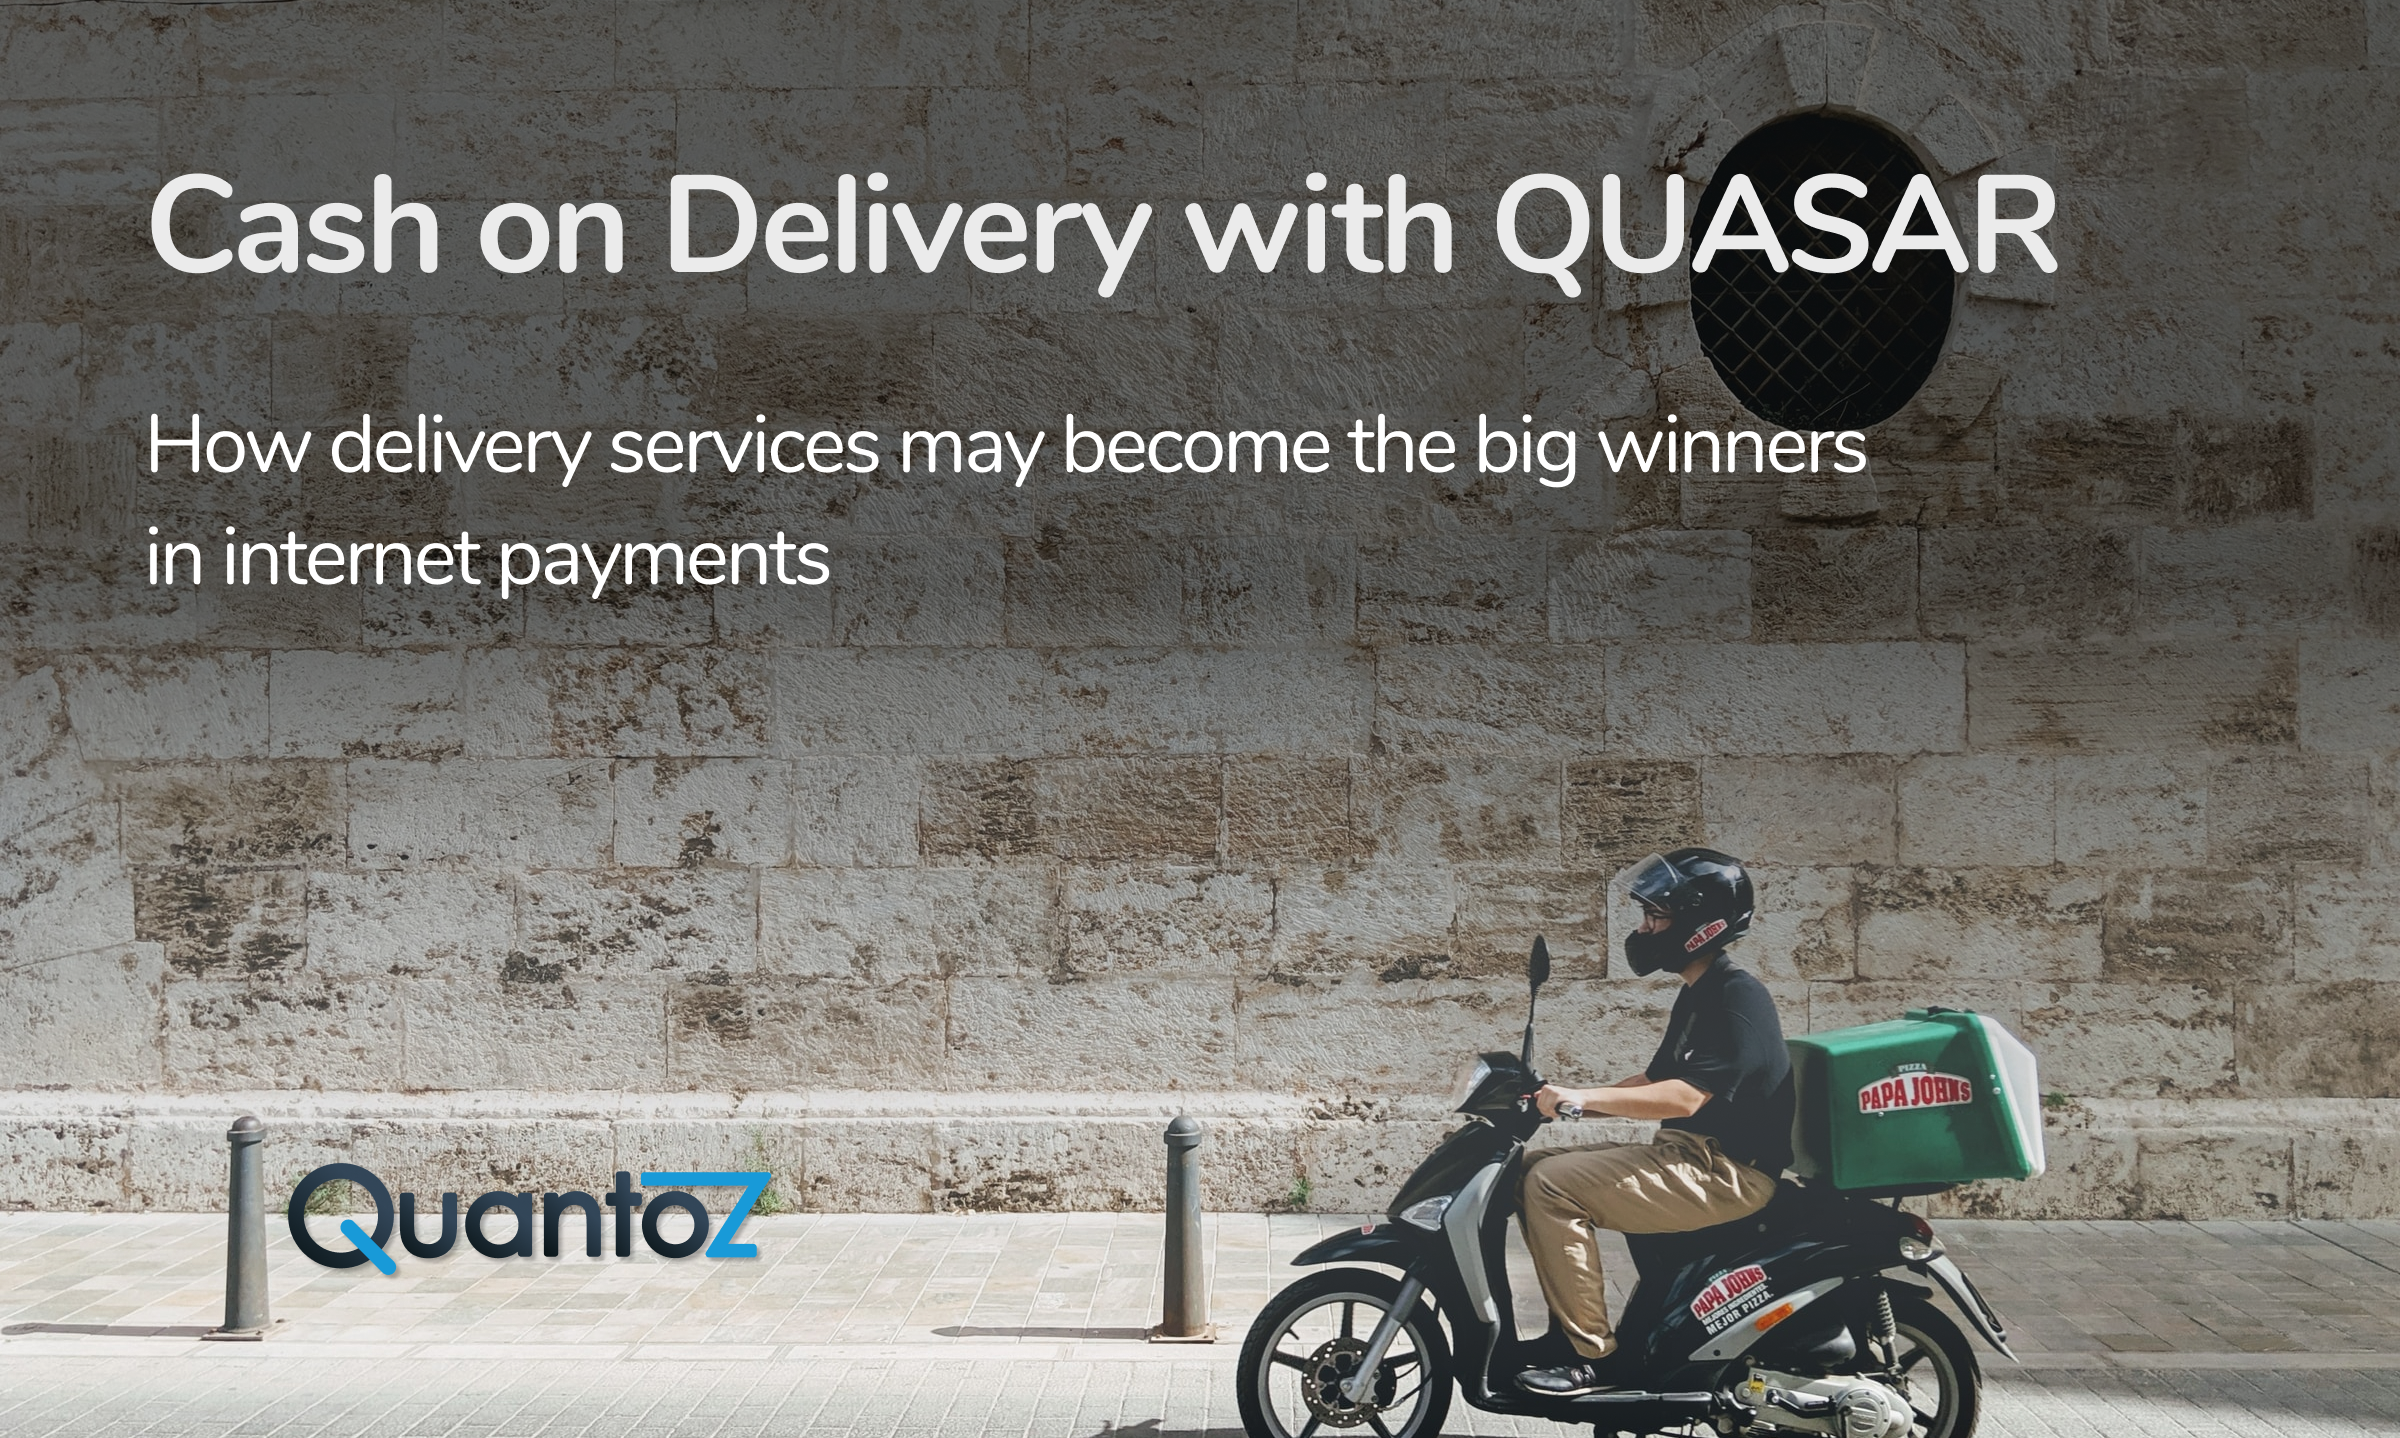 QUASAR Cash on Delivery